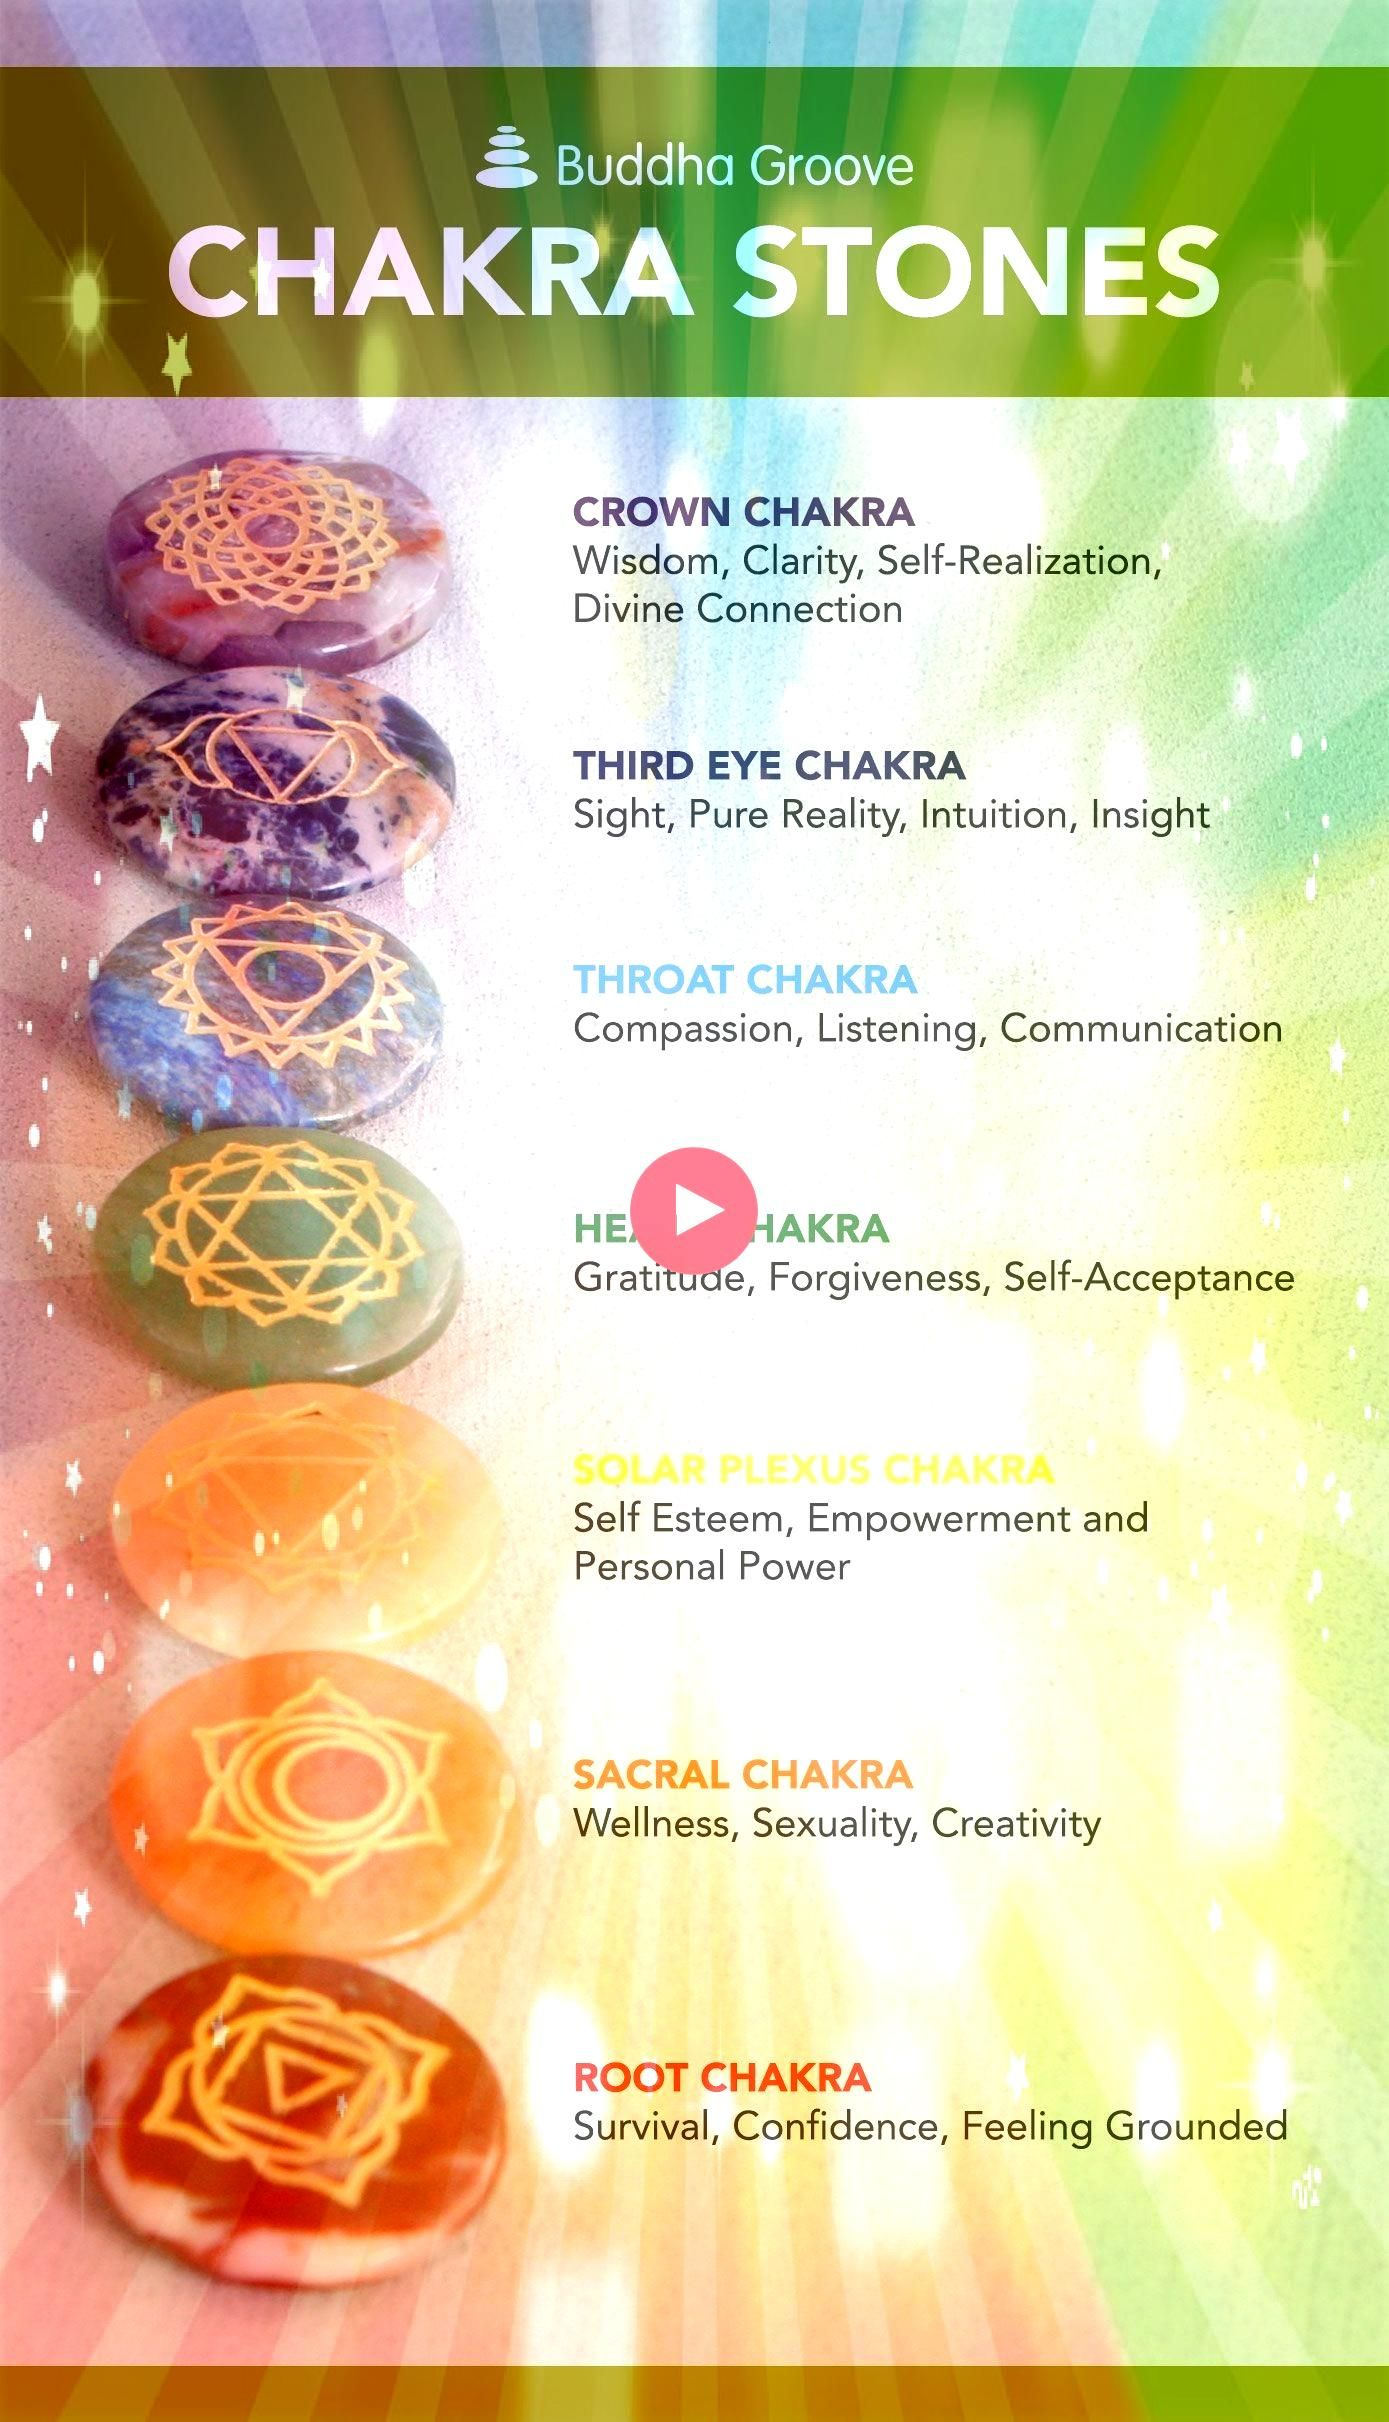 Chakras Engraved Pocket Stones Seven Chakras Engraved Pocket Stones  How yoga and meditation can change your life Chart on Psychological Issues of Blocked Chakras Yoga Re...